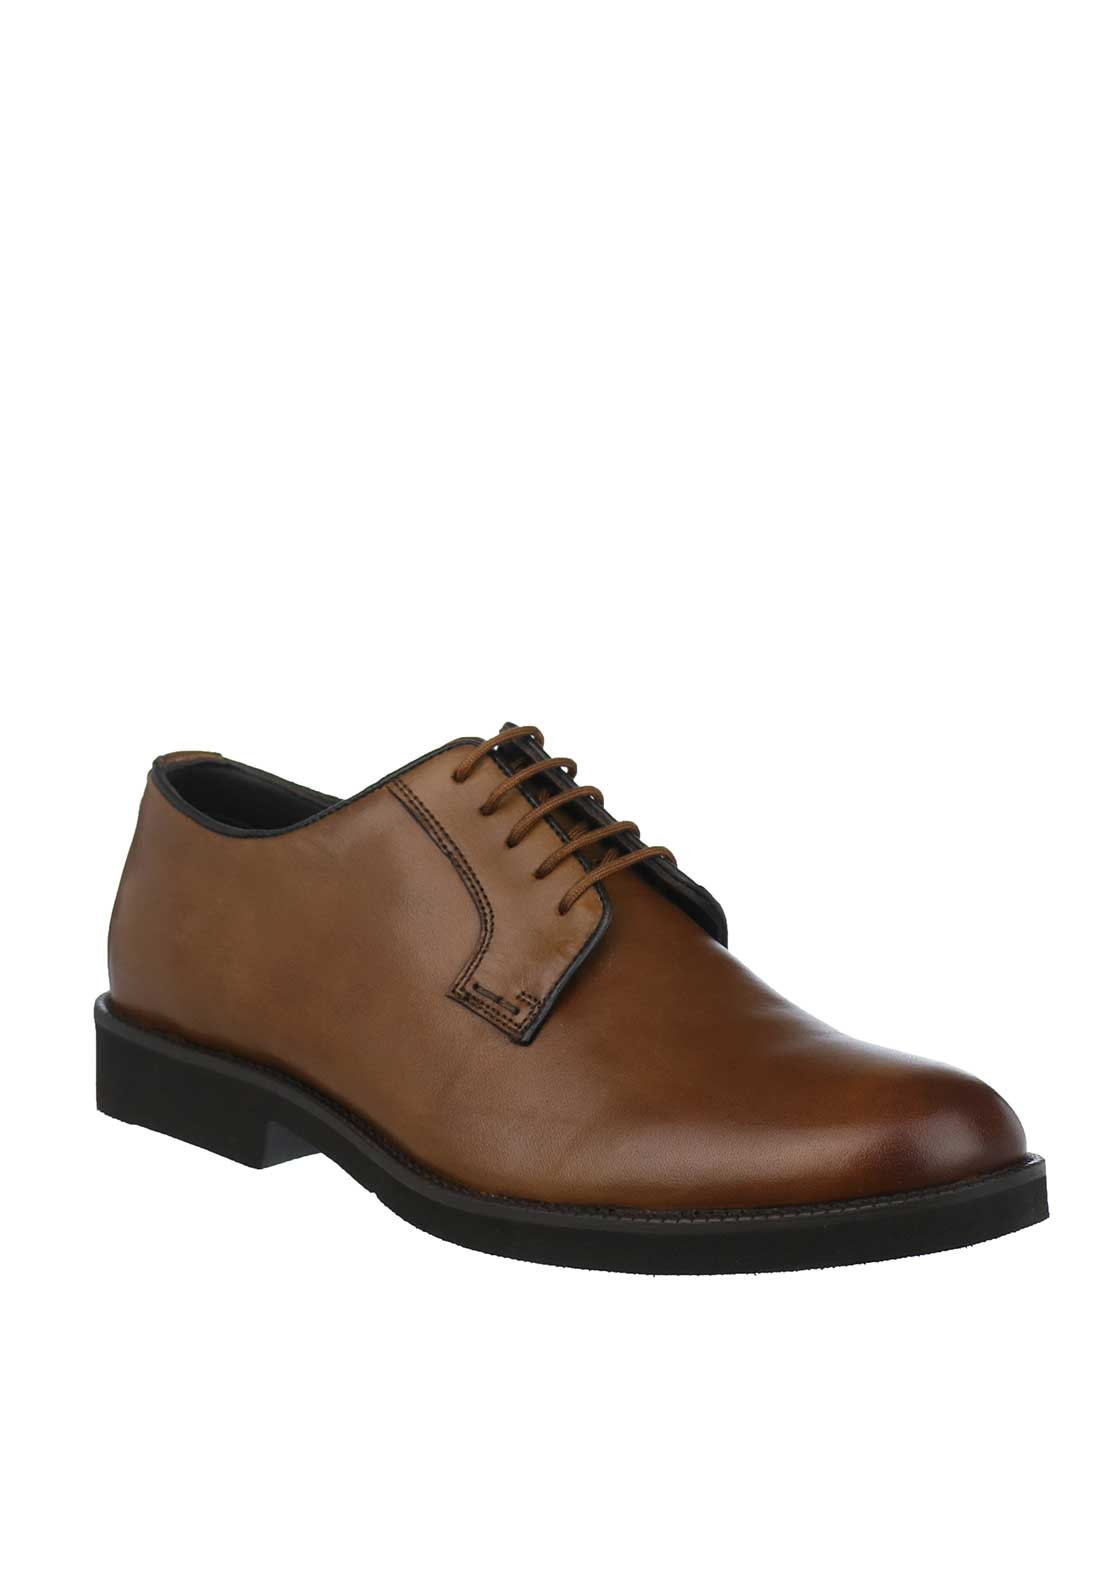 Paul O'Donnell by POD Delta Leather Shoes, Tan